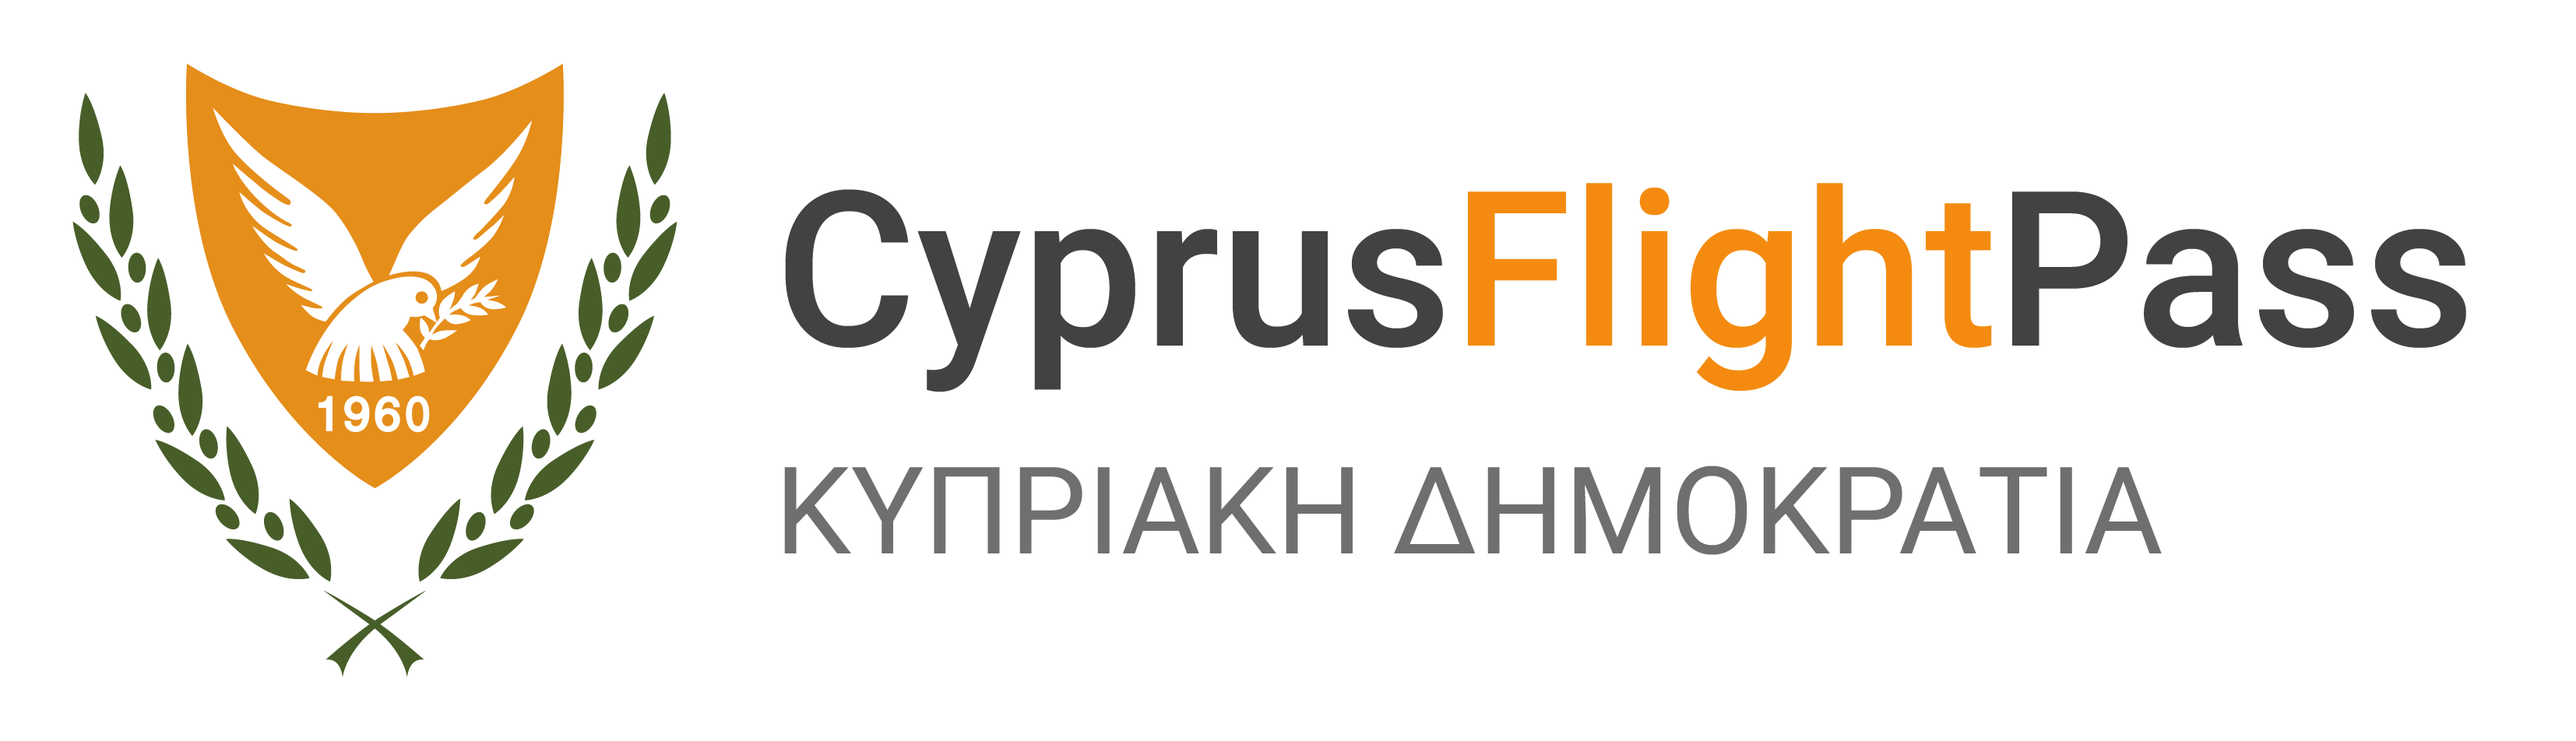 Cyprus Flight Pass